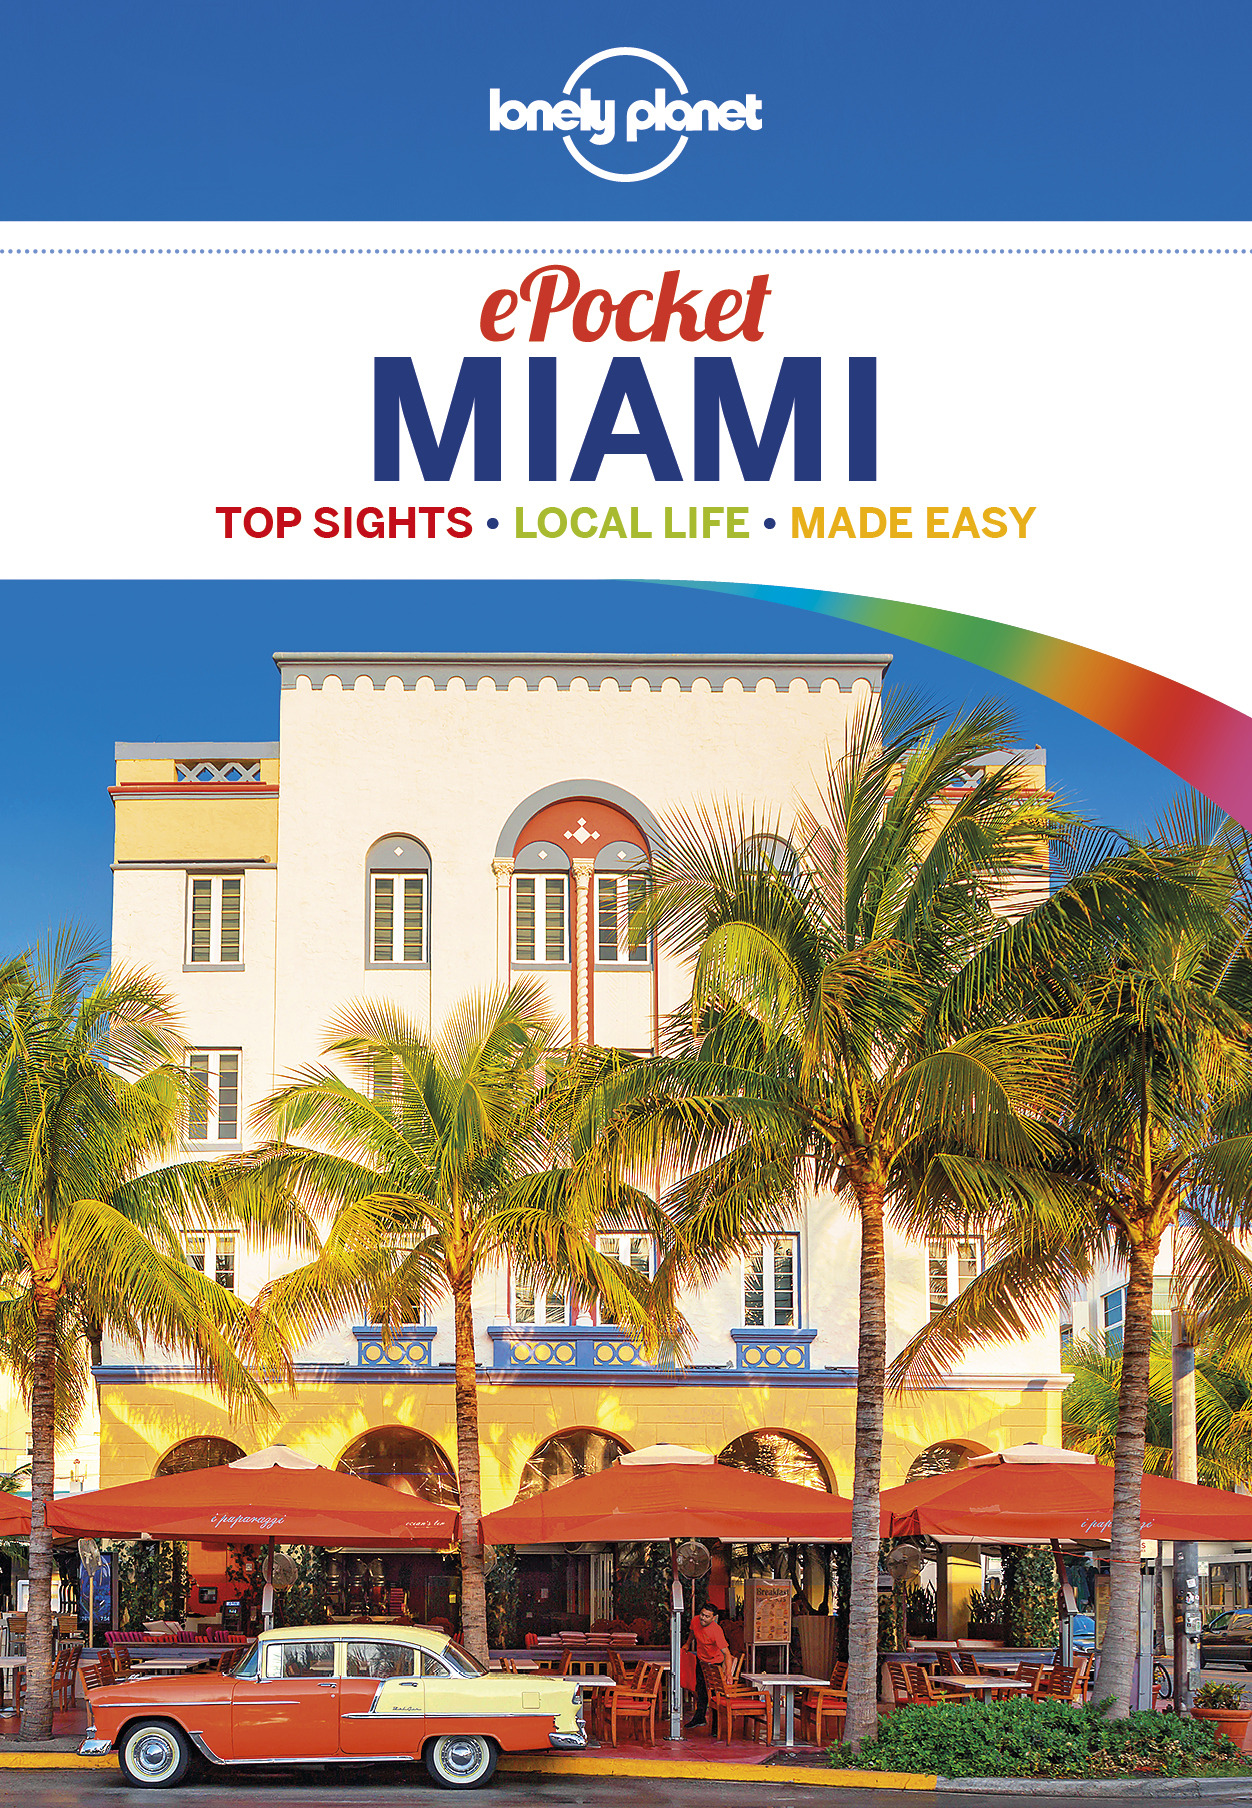 Louis, Regis St - Lonely Planet Pocket Miami, ebook